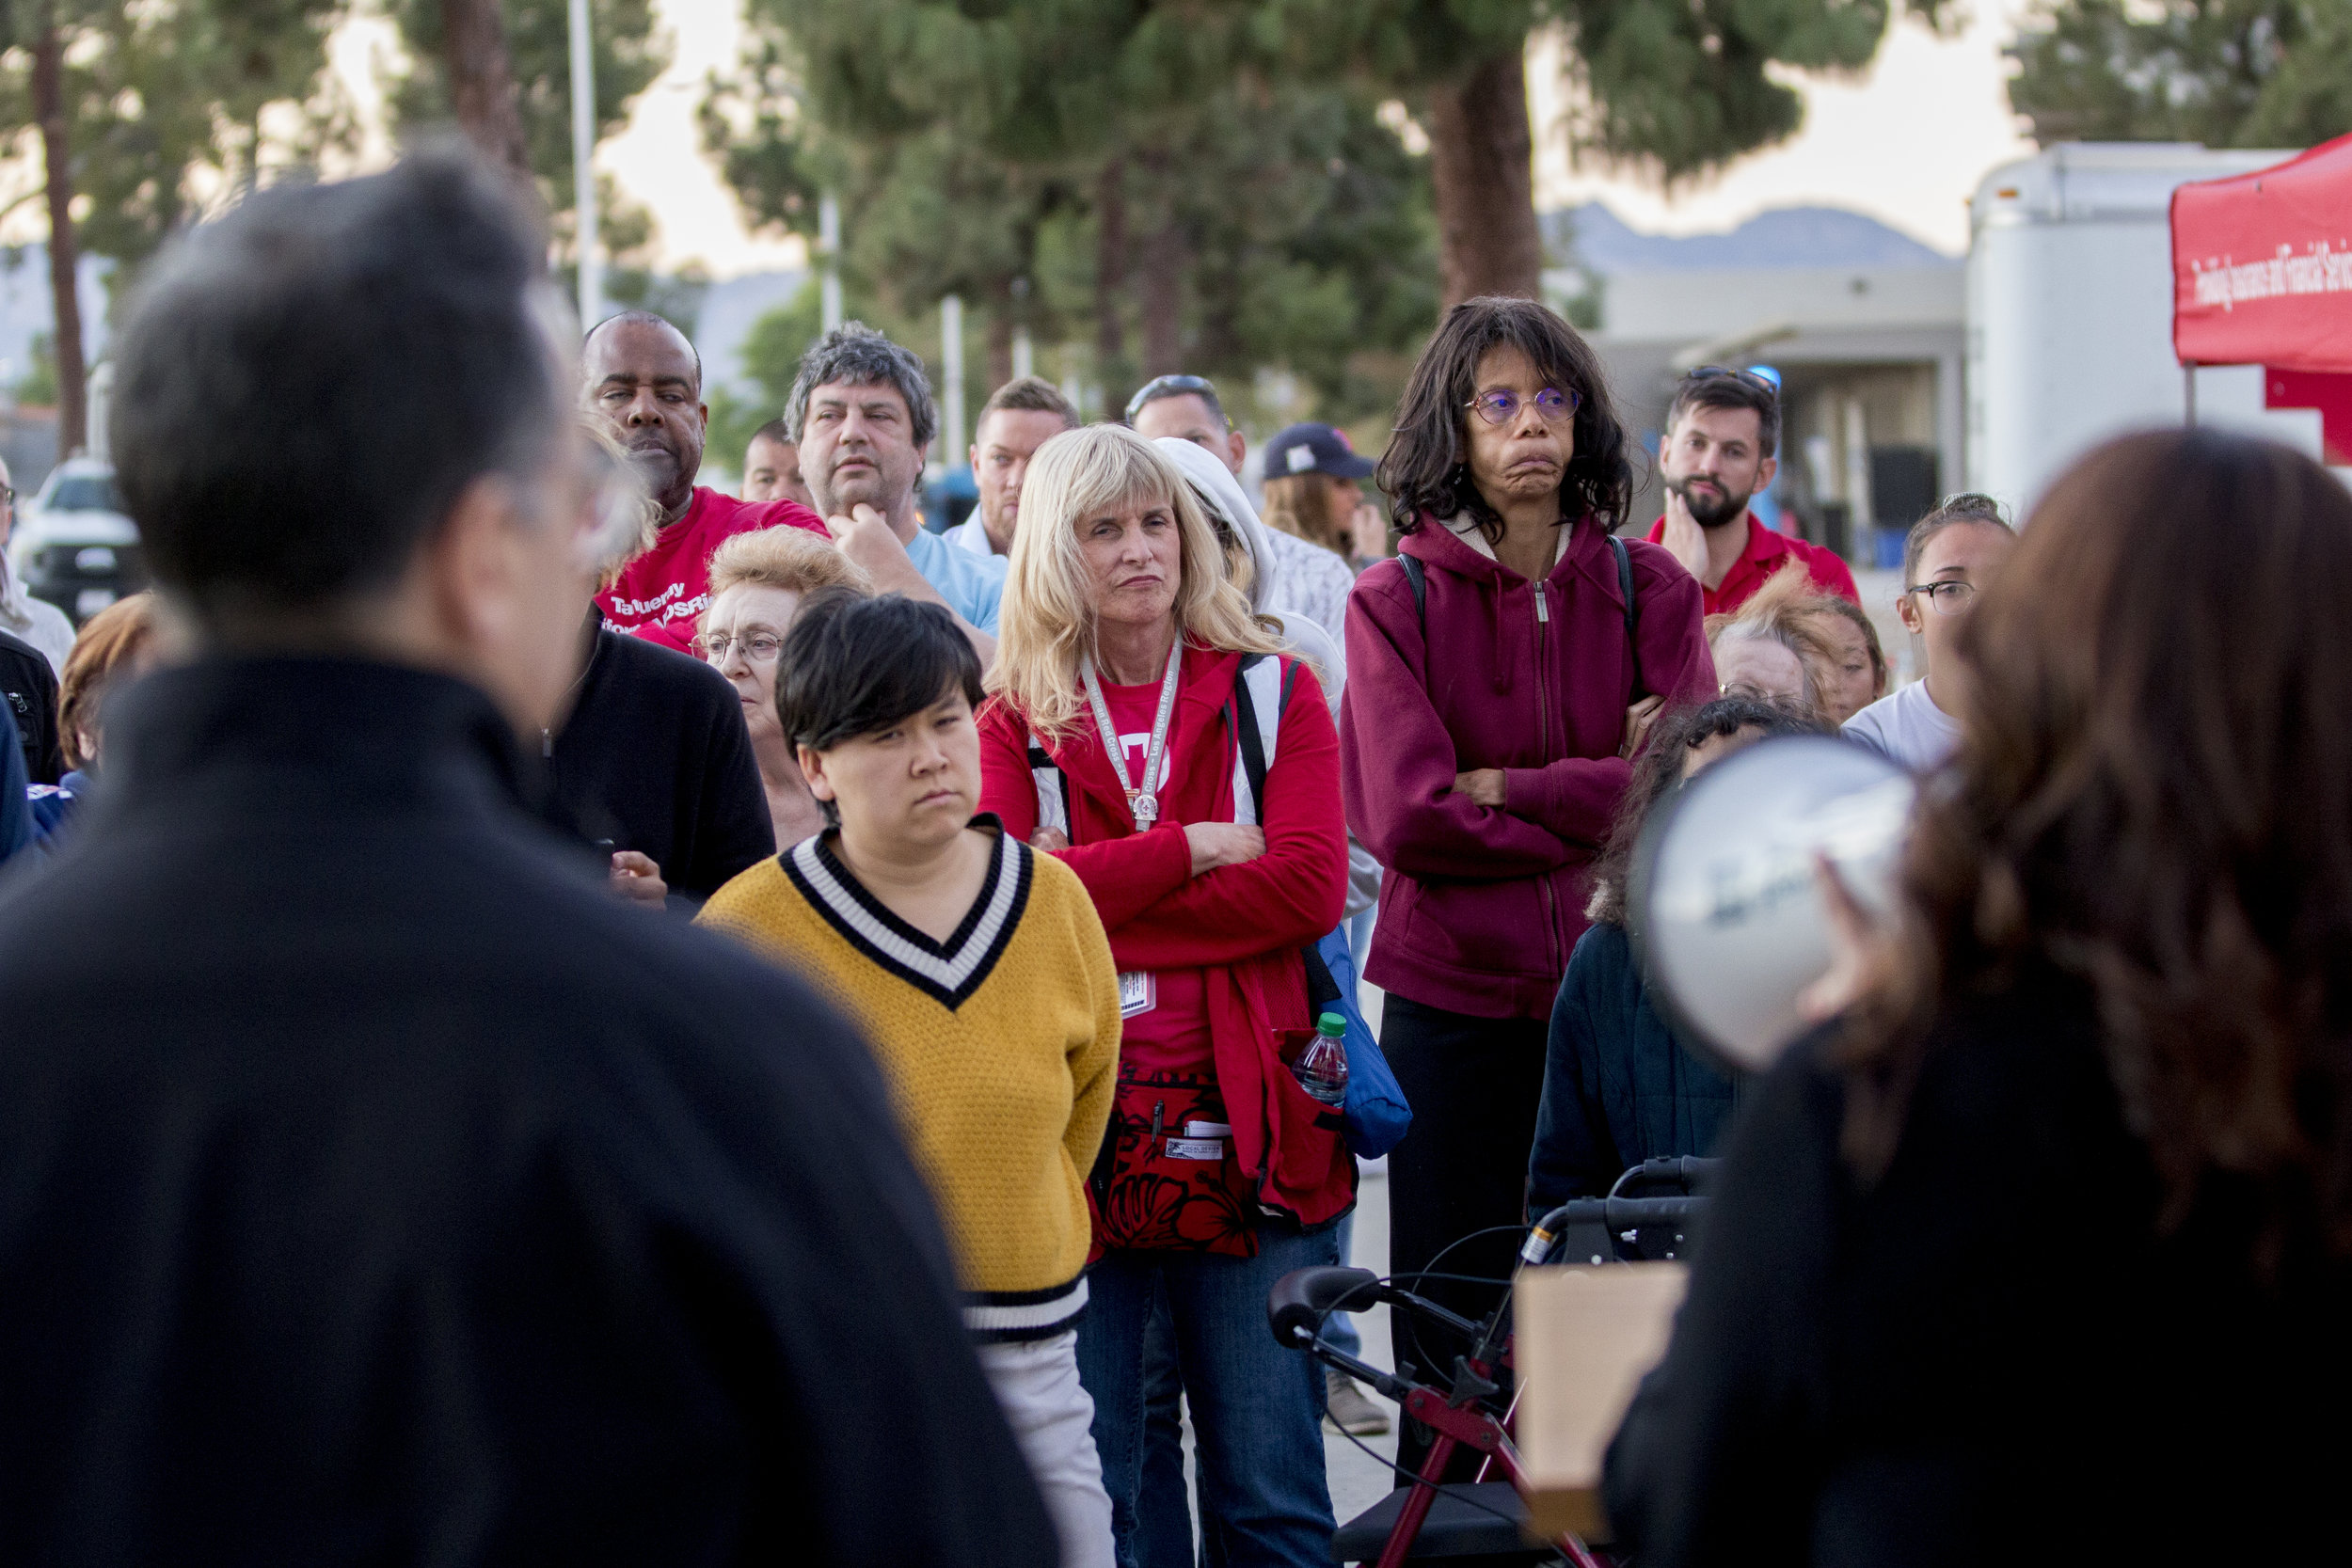 Evacuees listen as authorities share updates on the Woolsey fire in front of the evacuation center set up at Los Angeles Pierce College on November 9, 2018 in Woodland Hills, Calif. (Jose Lopez)